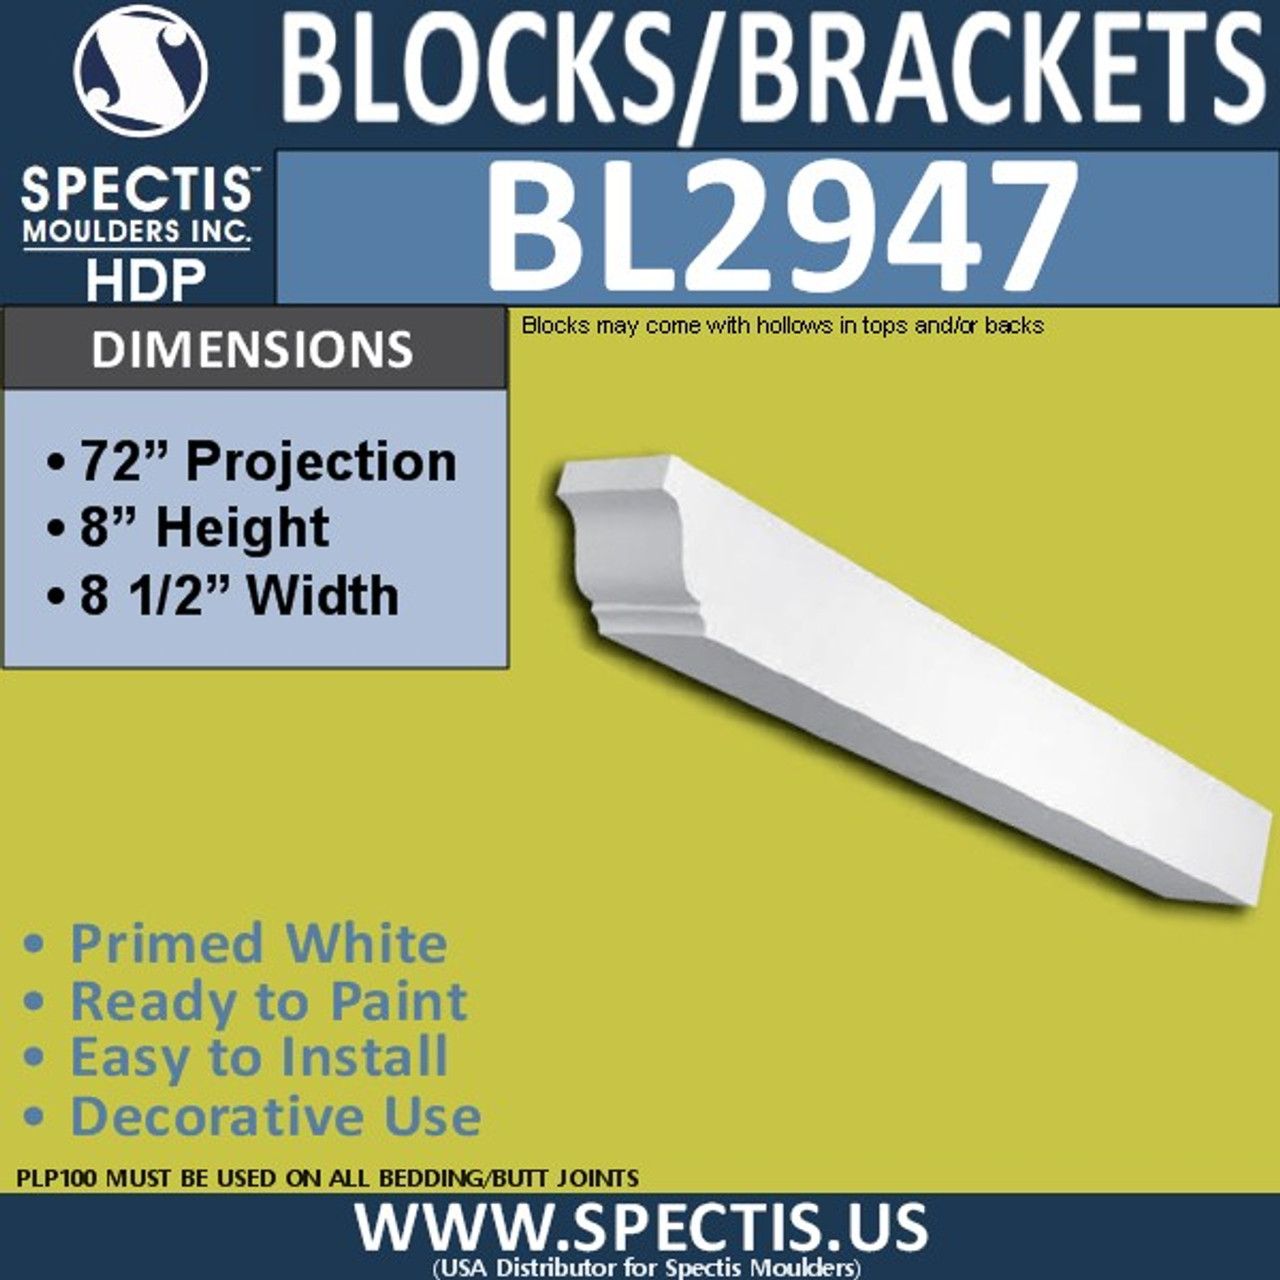 "BL2947 Eave Block or Bracket 8.5""W x 8""H x 72"" P"